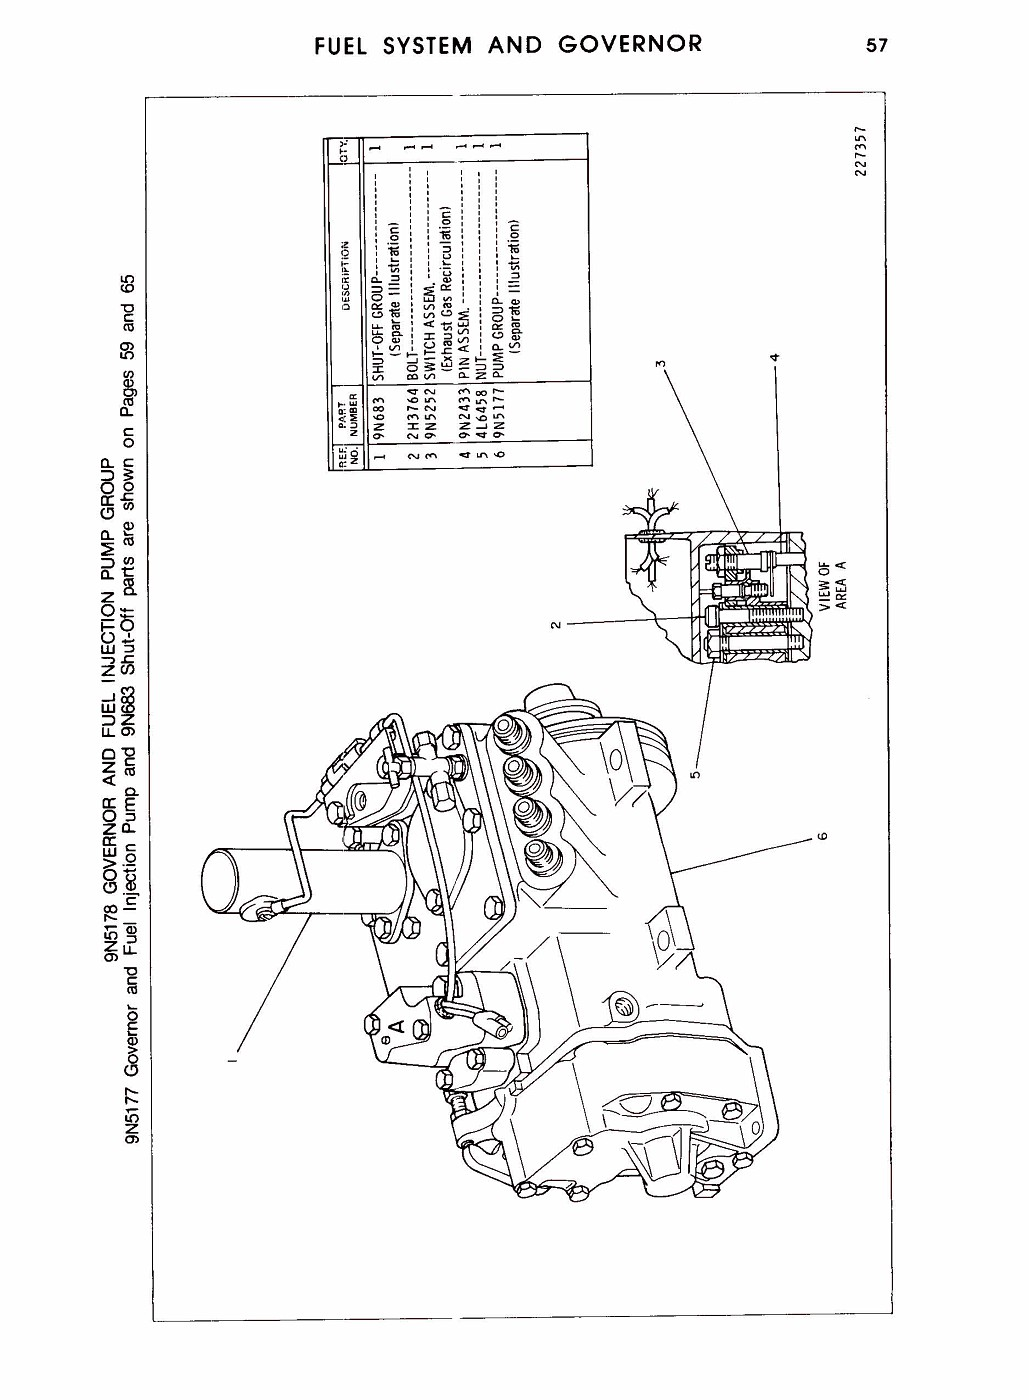 V8 Caterpillar Engine Parts Diagrams